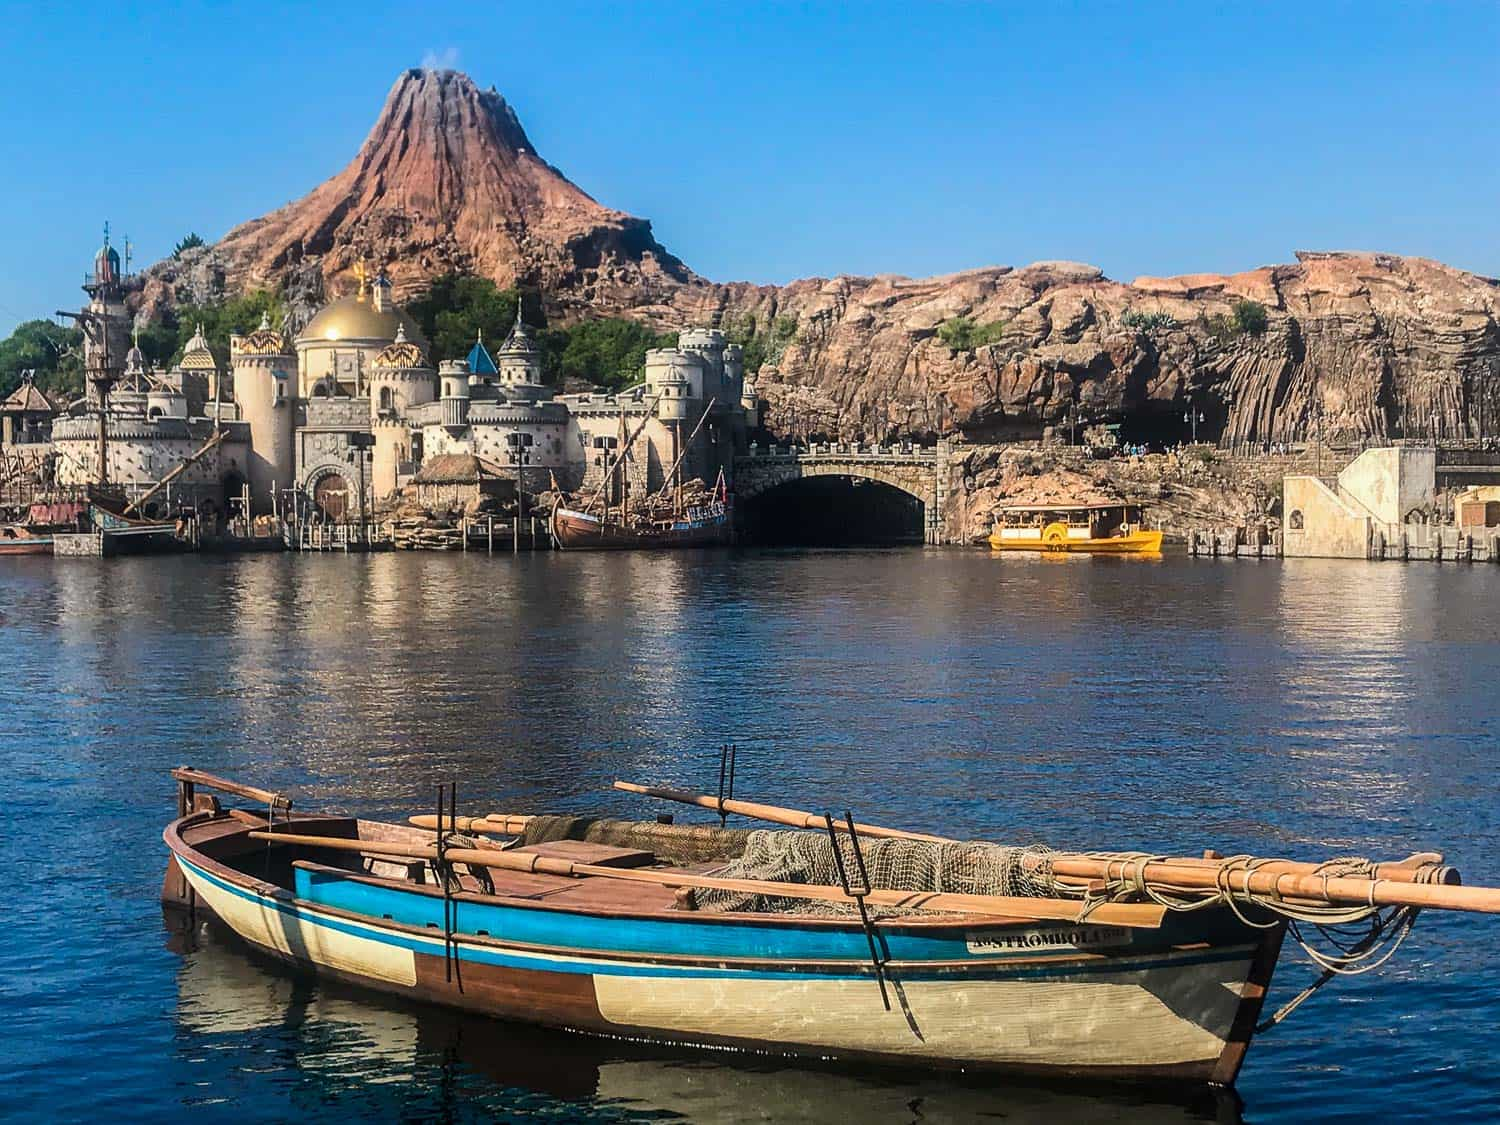 The best Tokyo DisneySea rides and attractions for adults